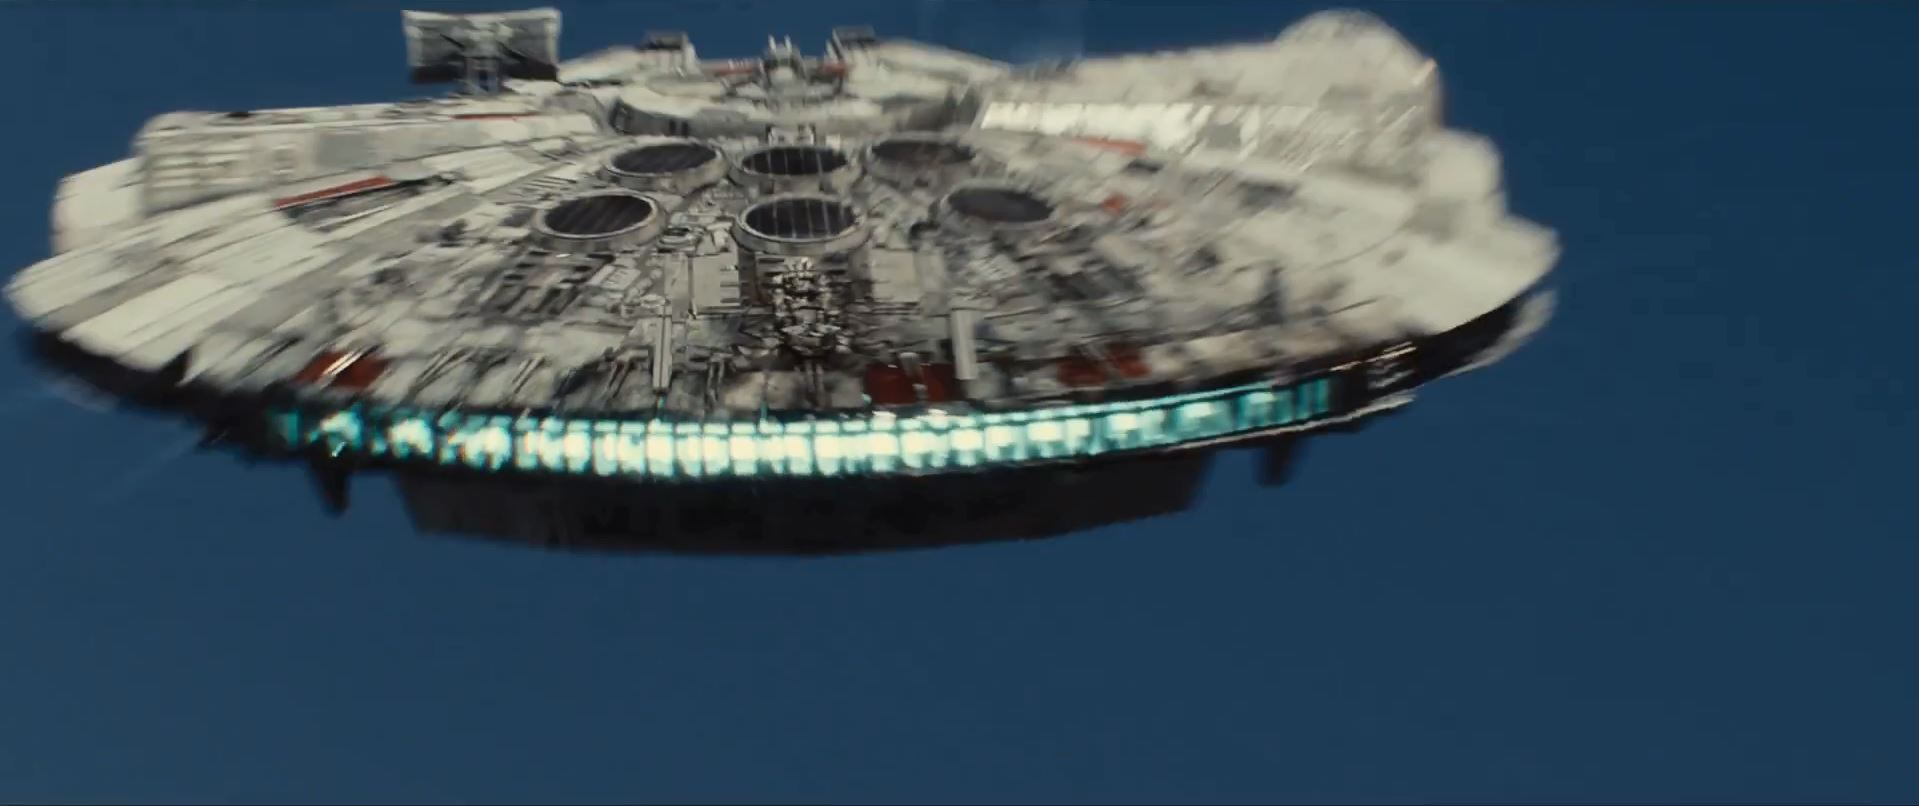 New Millennium Falcon - Star Wars Episode 7 trailer released